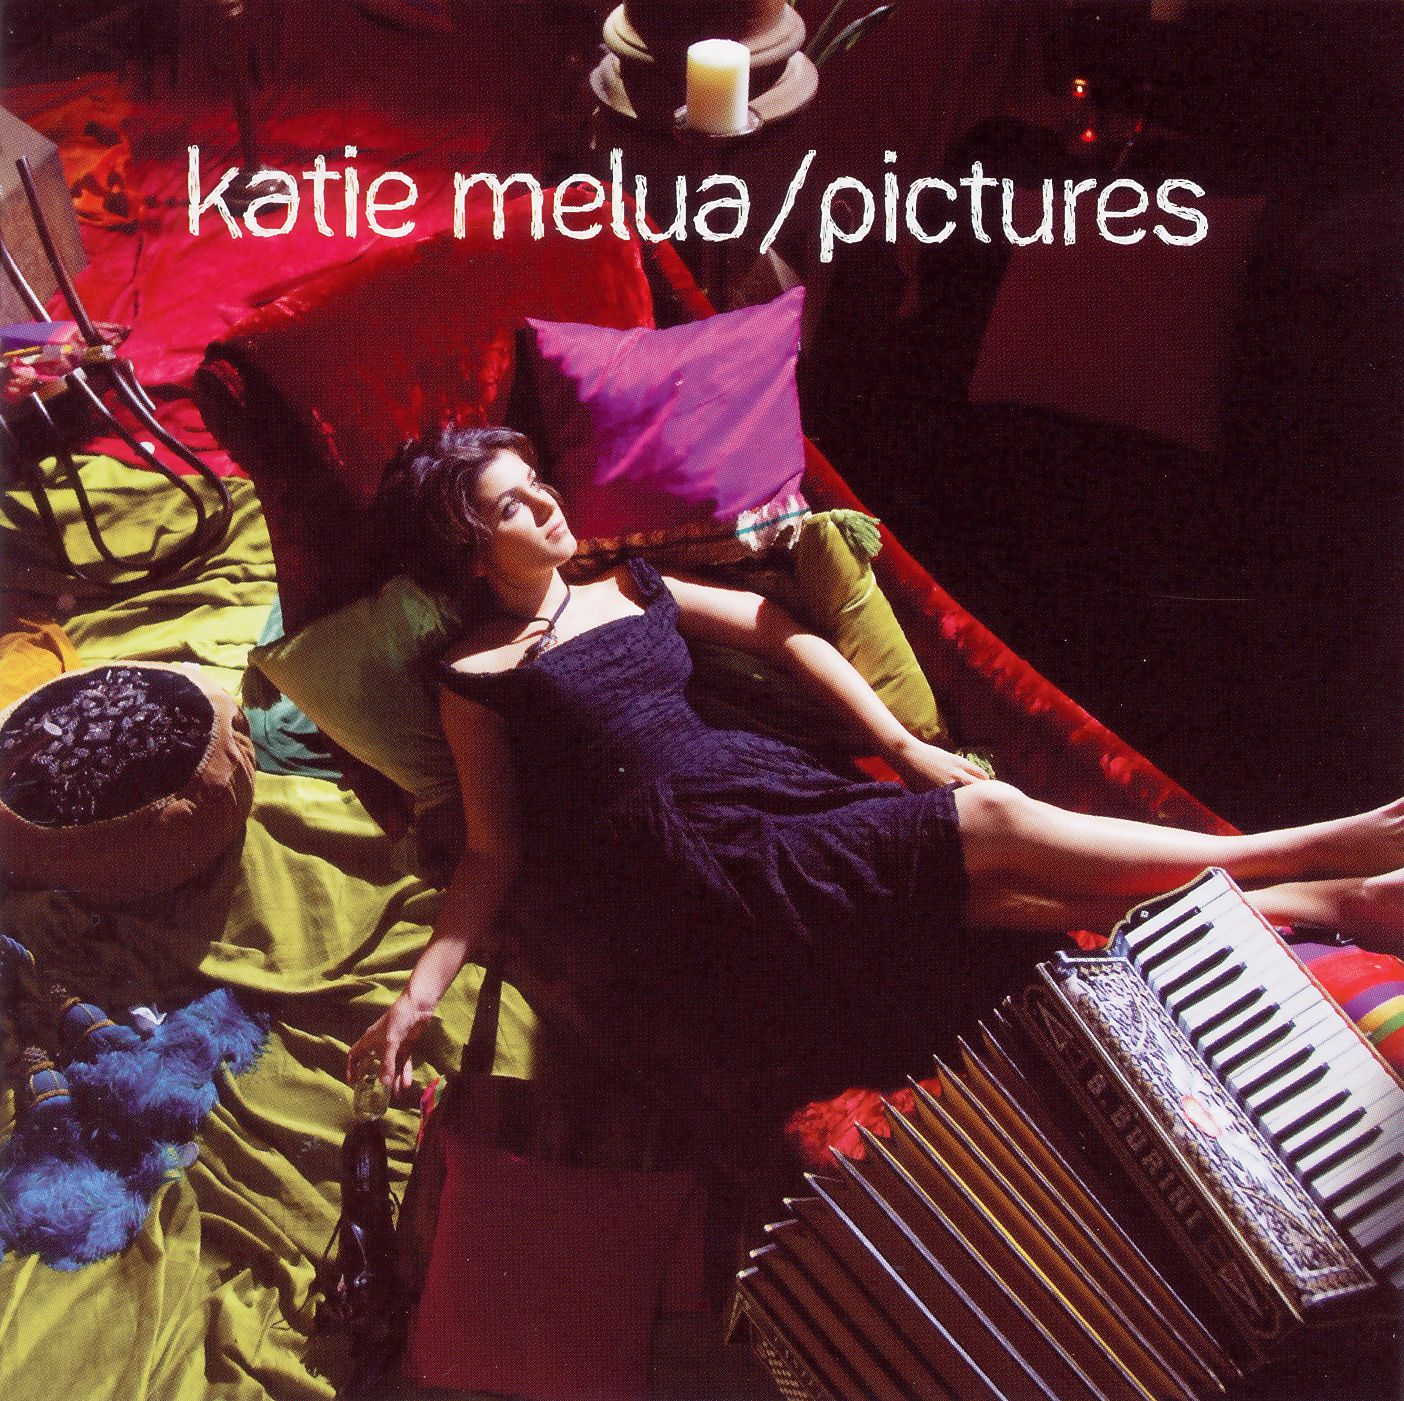 Katie Melua - Pictures album cover